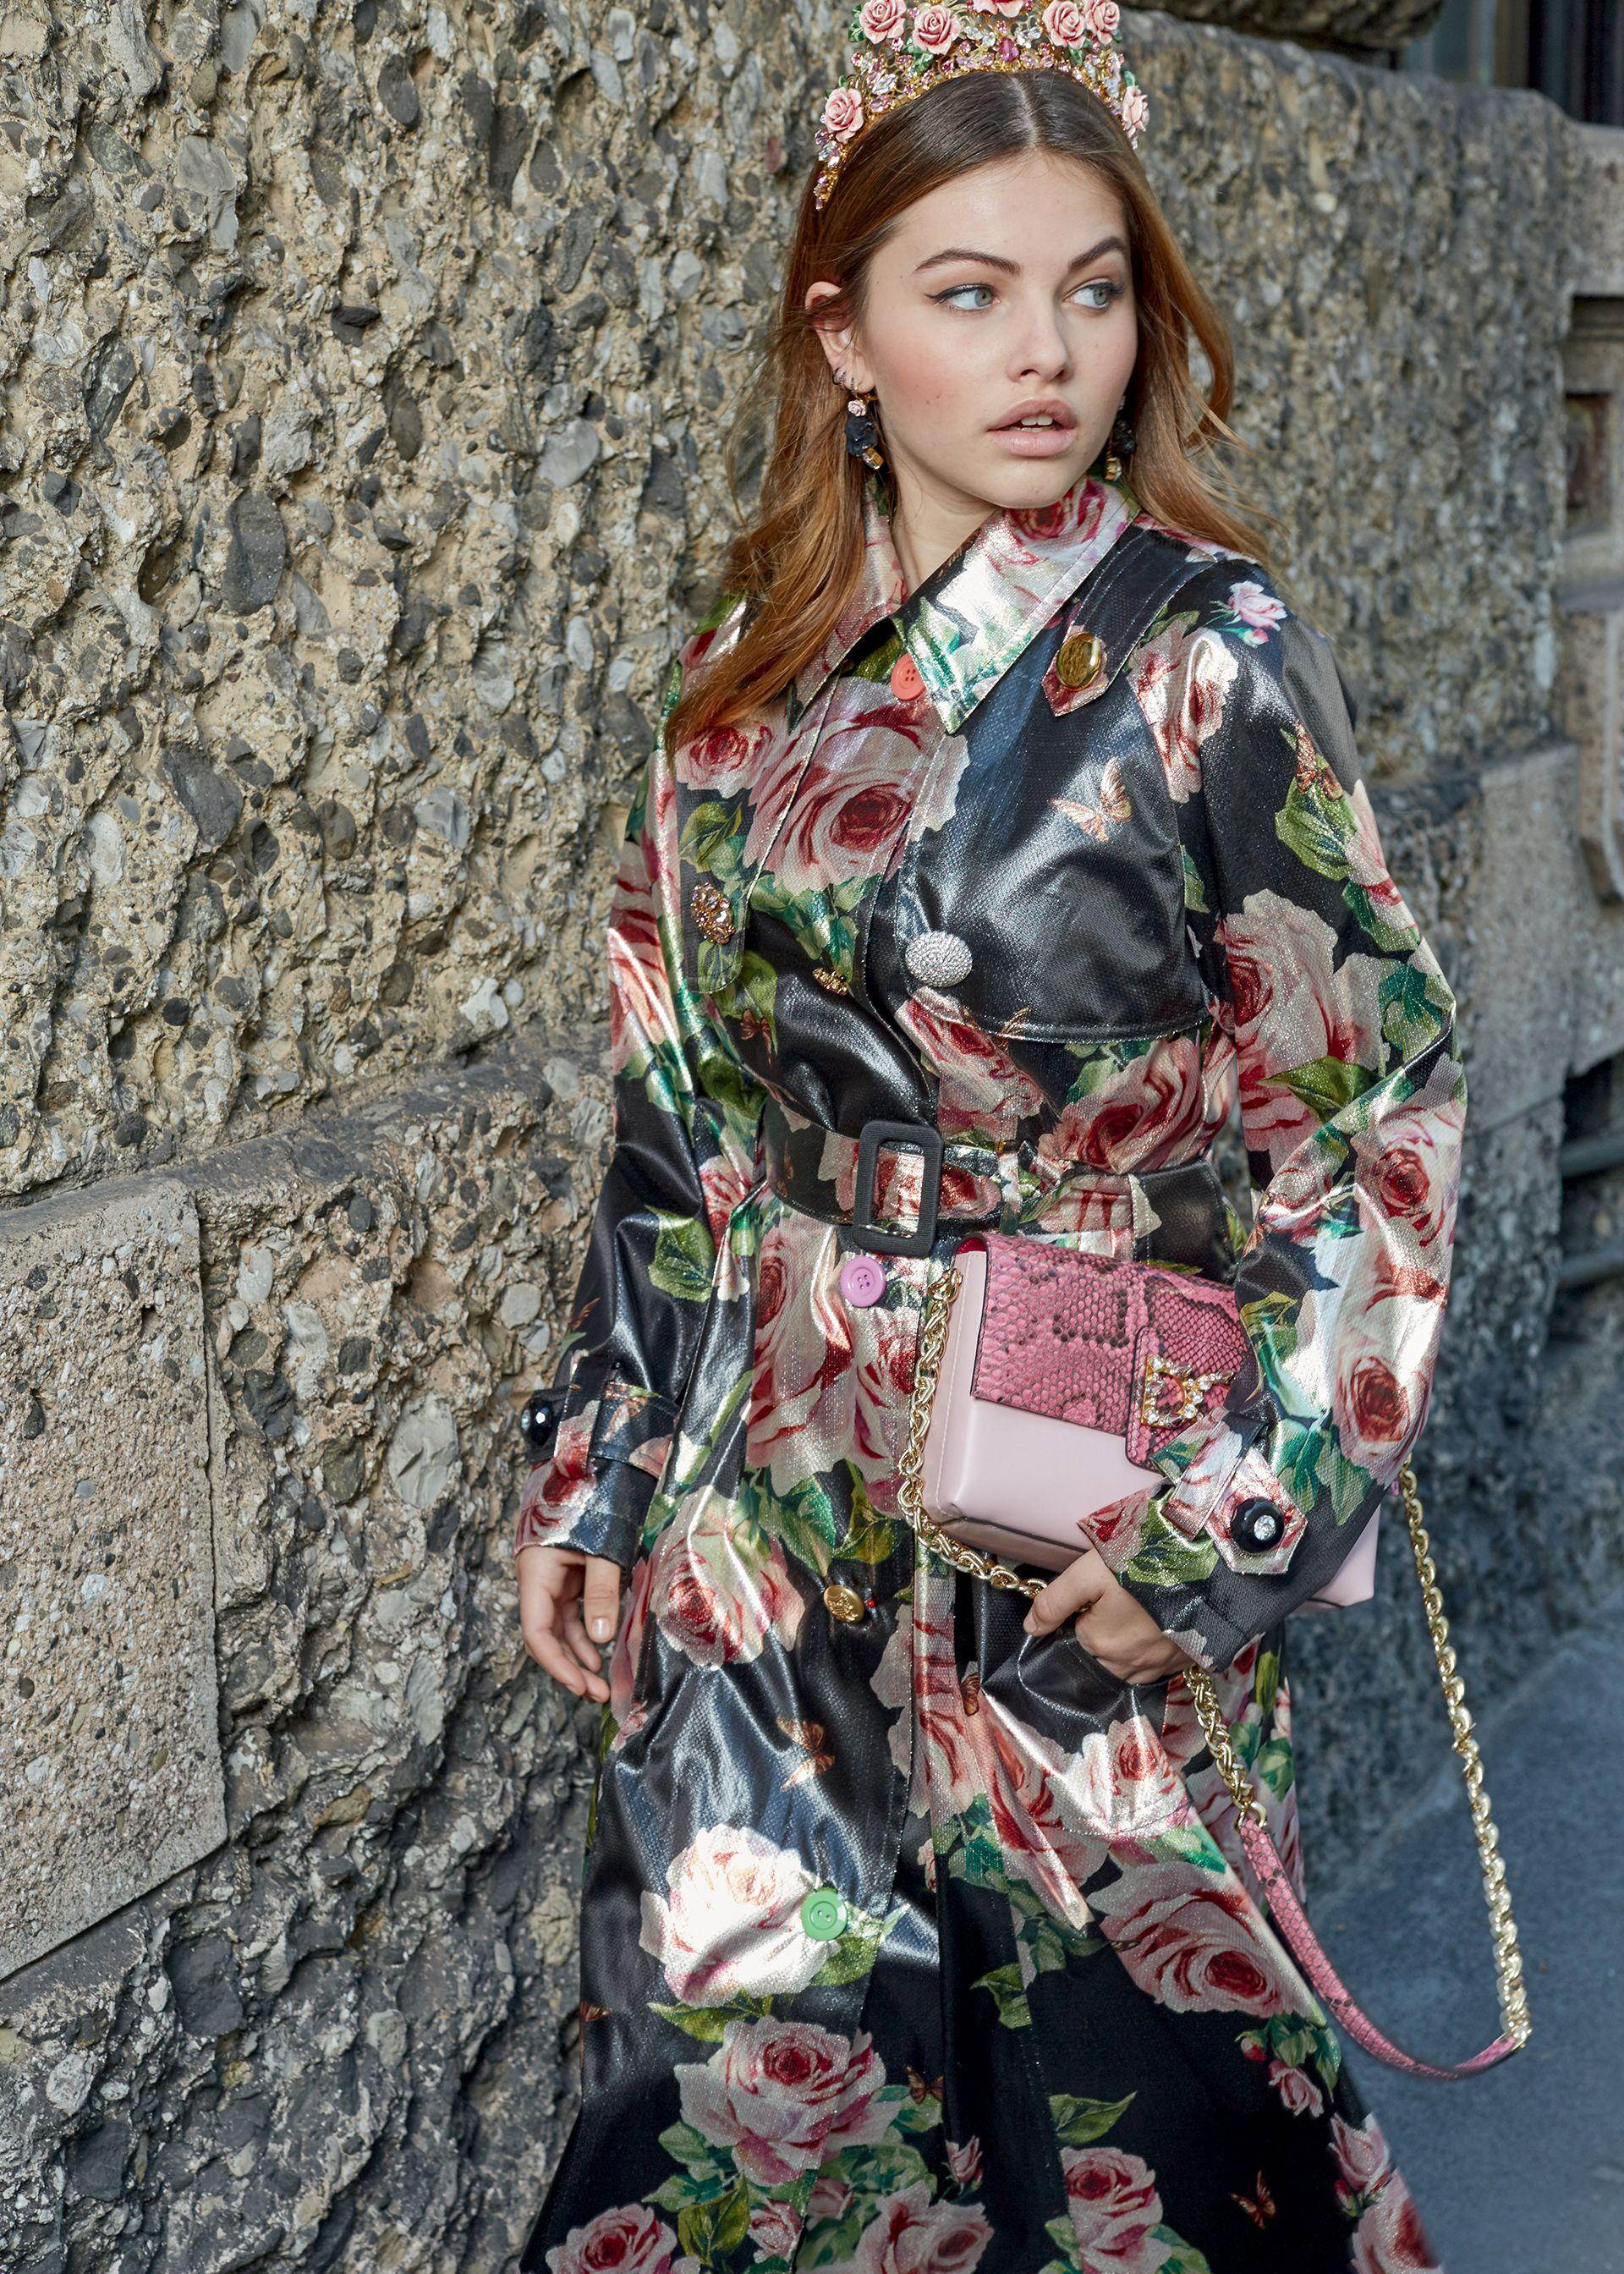 Discover the new Dolce&Gabbana Women's Love Christmas Collection for Spring Summer 2018 and get inspired.